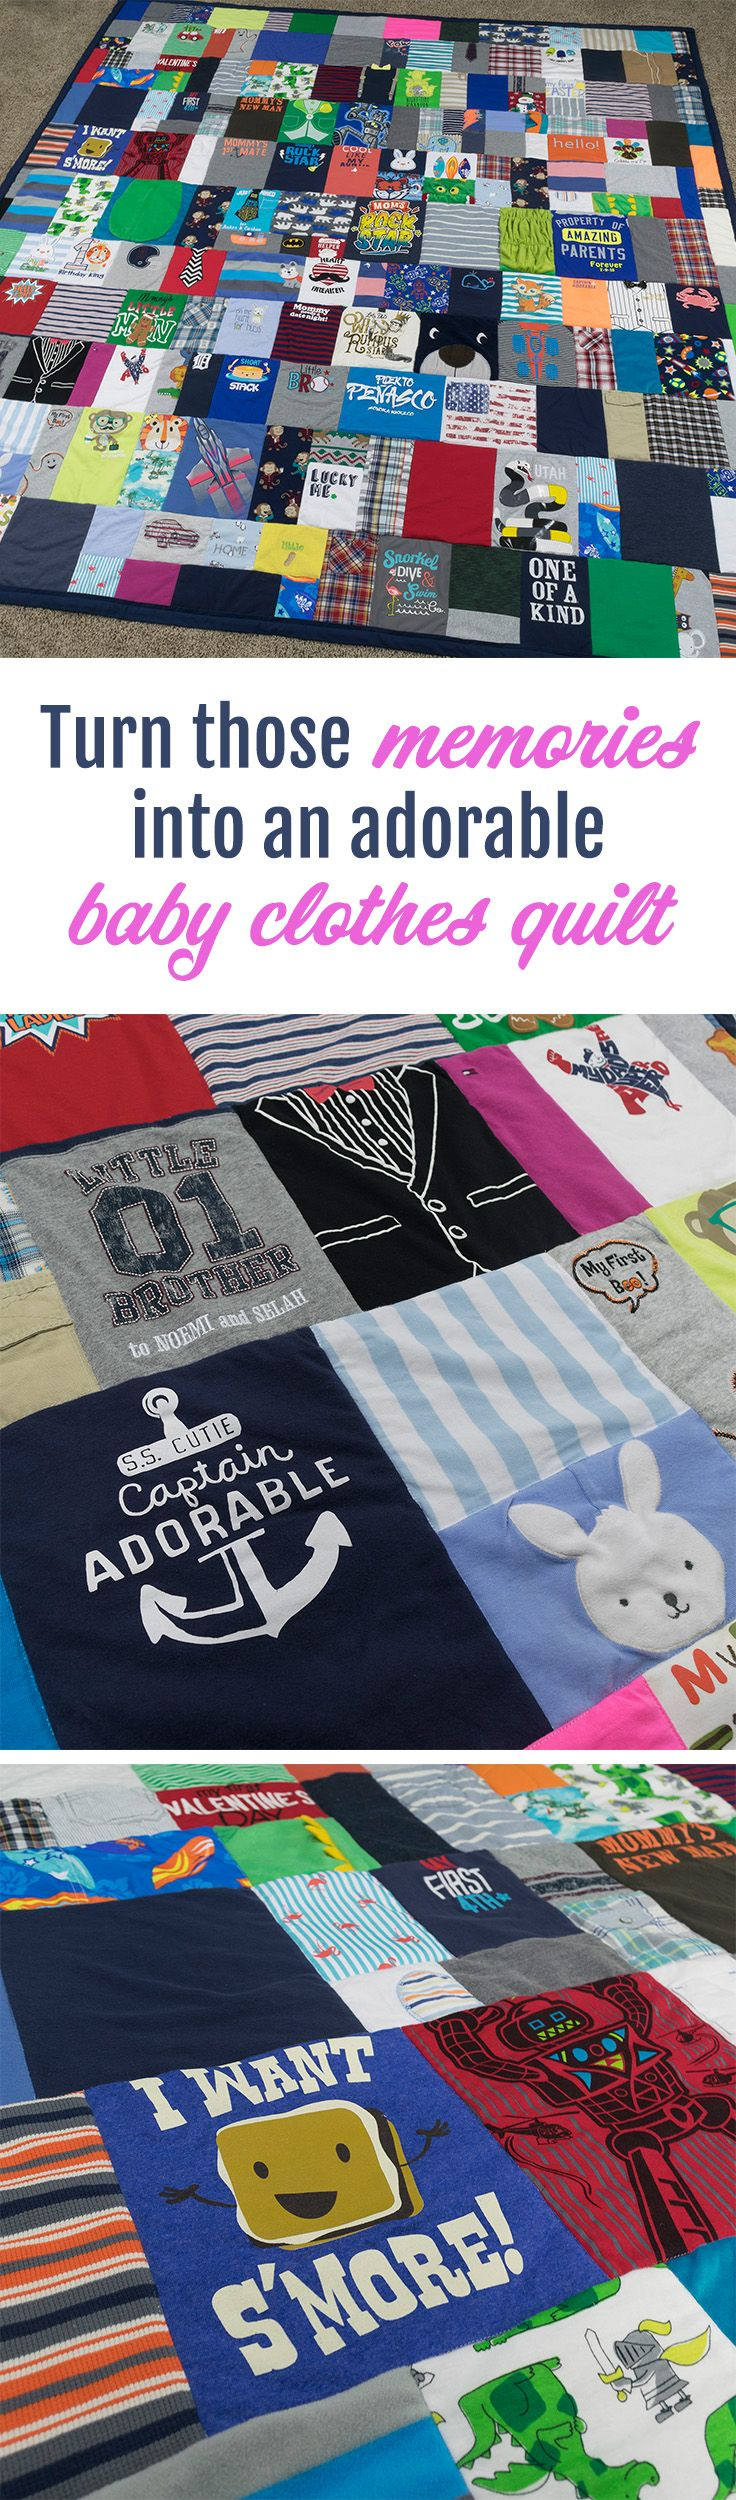 MUST DO with the little muchkin's clothes! This website makes the cutest baby clothes quilts, time to start going through those cute onesies! So glad I didn't sell them, lol.